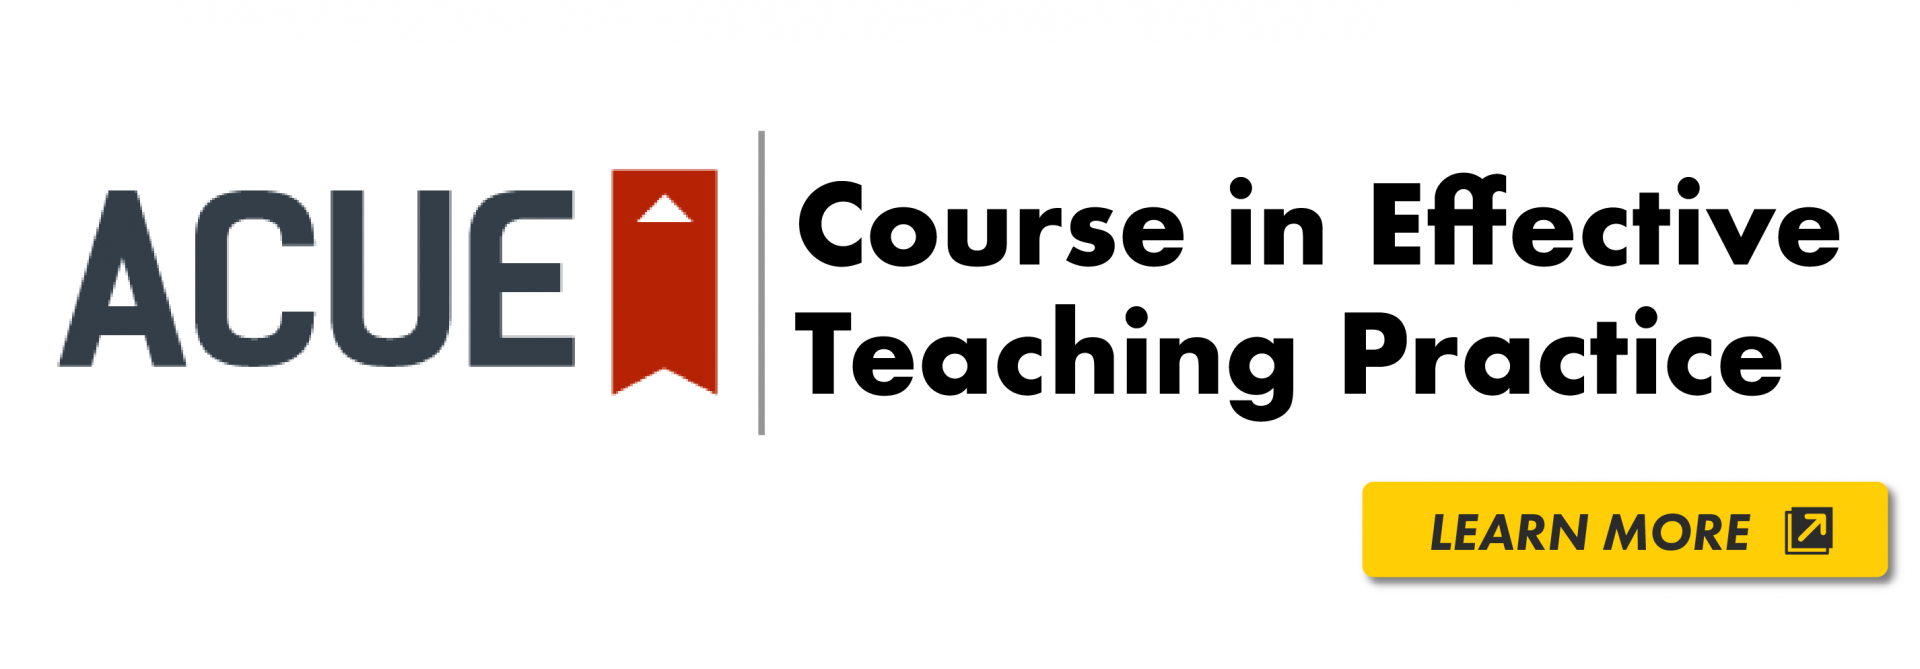 ACUE Course in Effective Teaching Practice